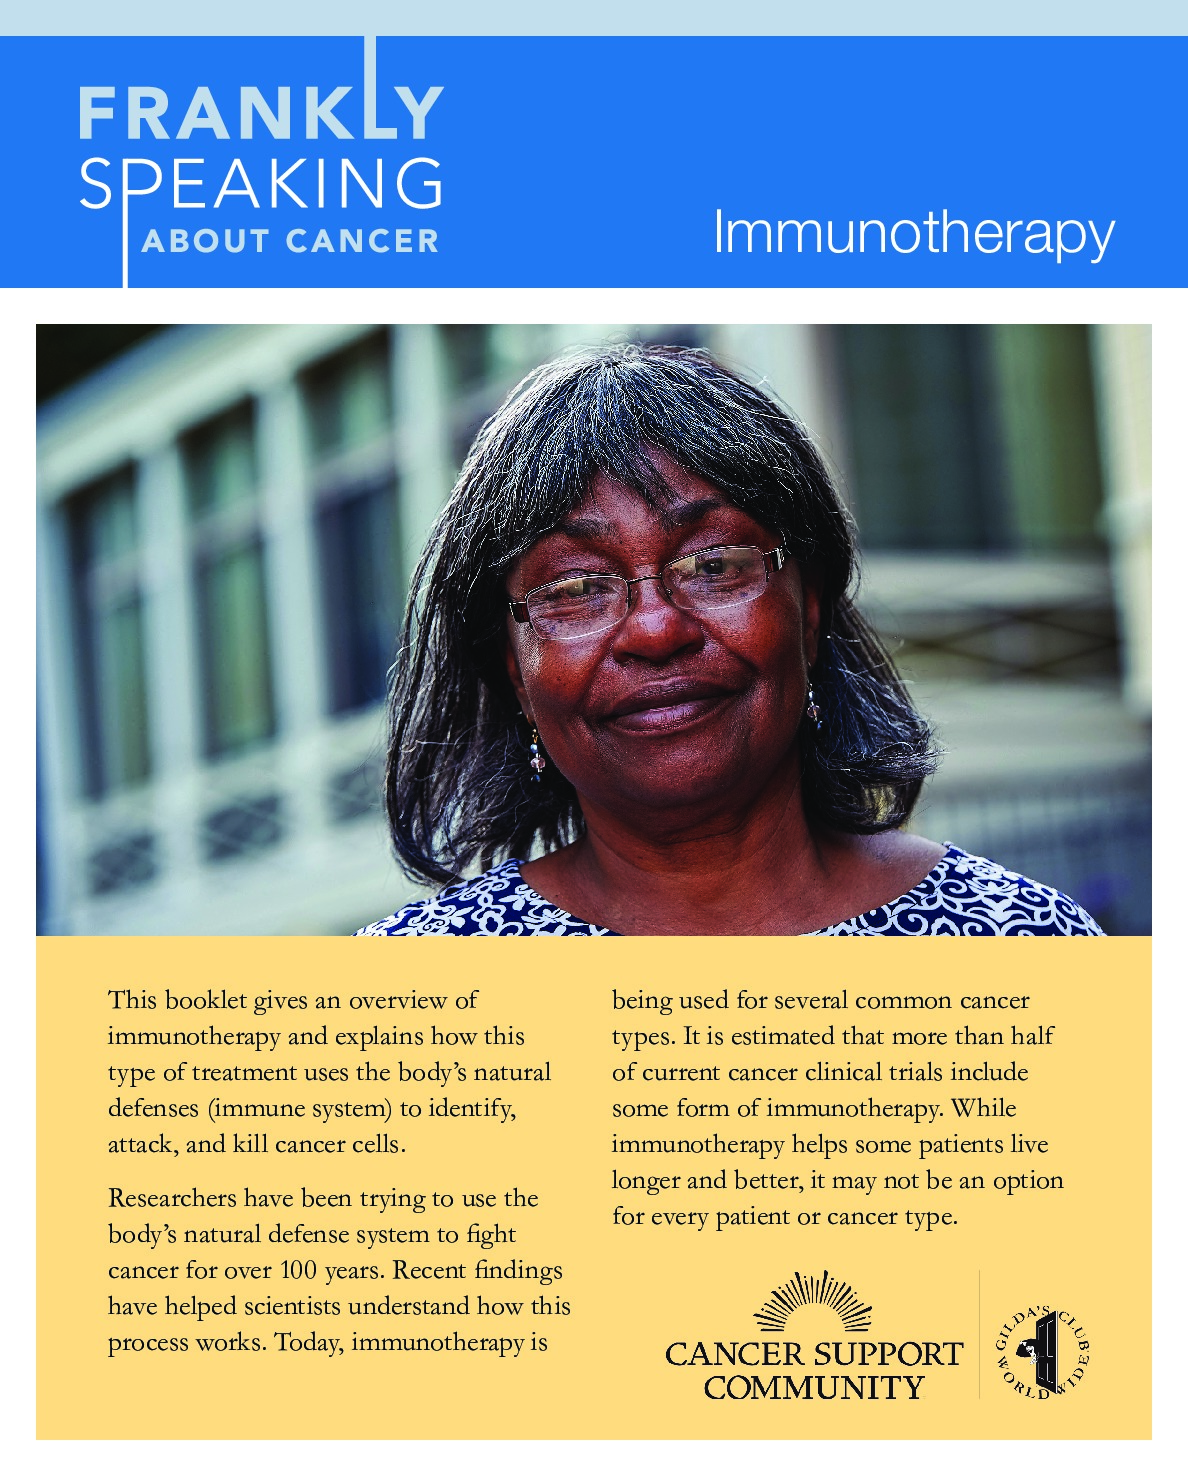 Immunotherapy Overview